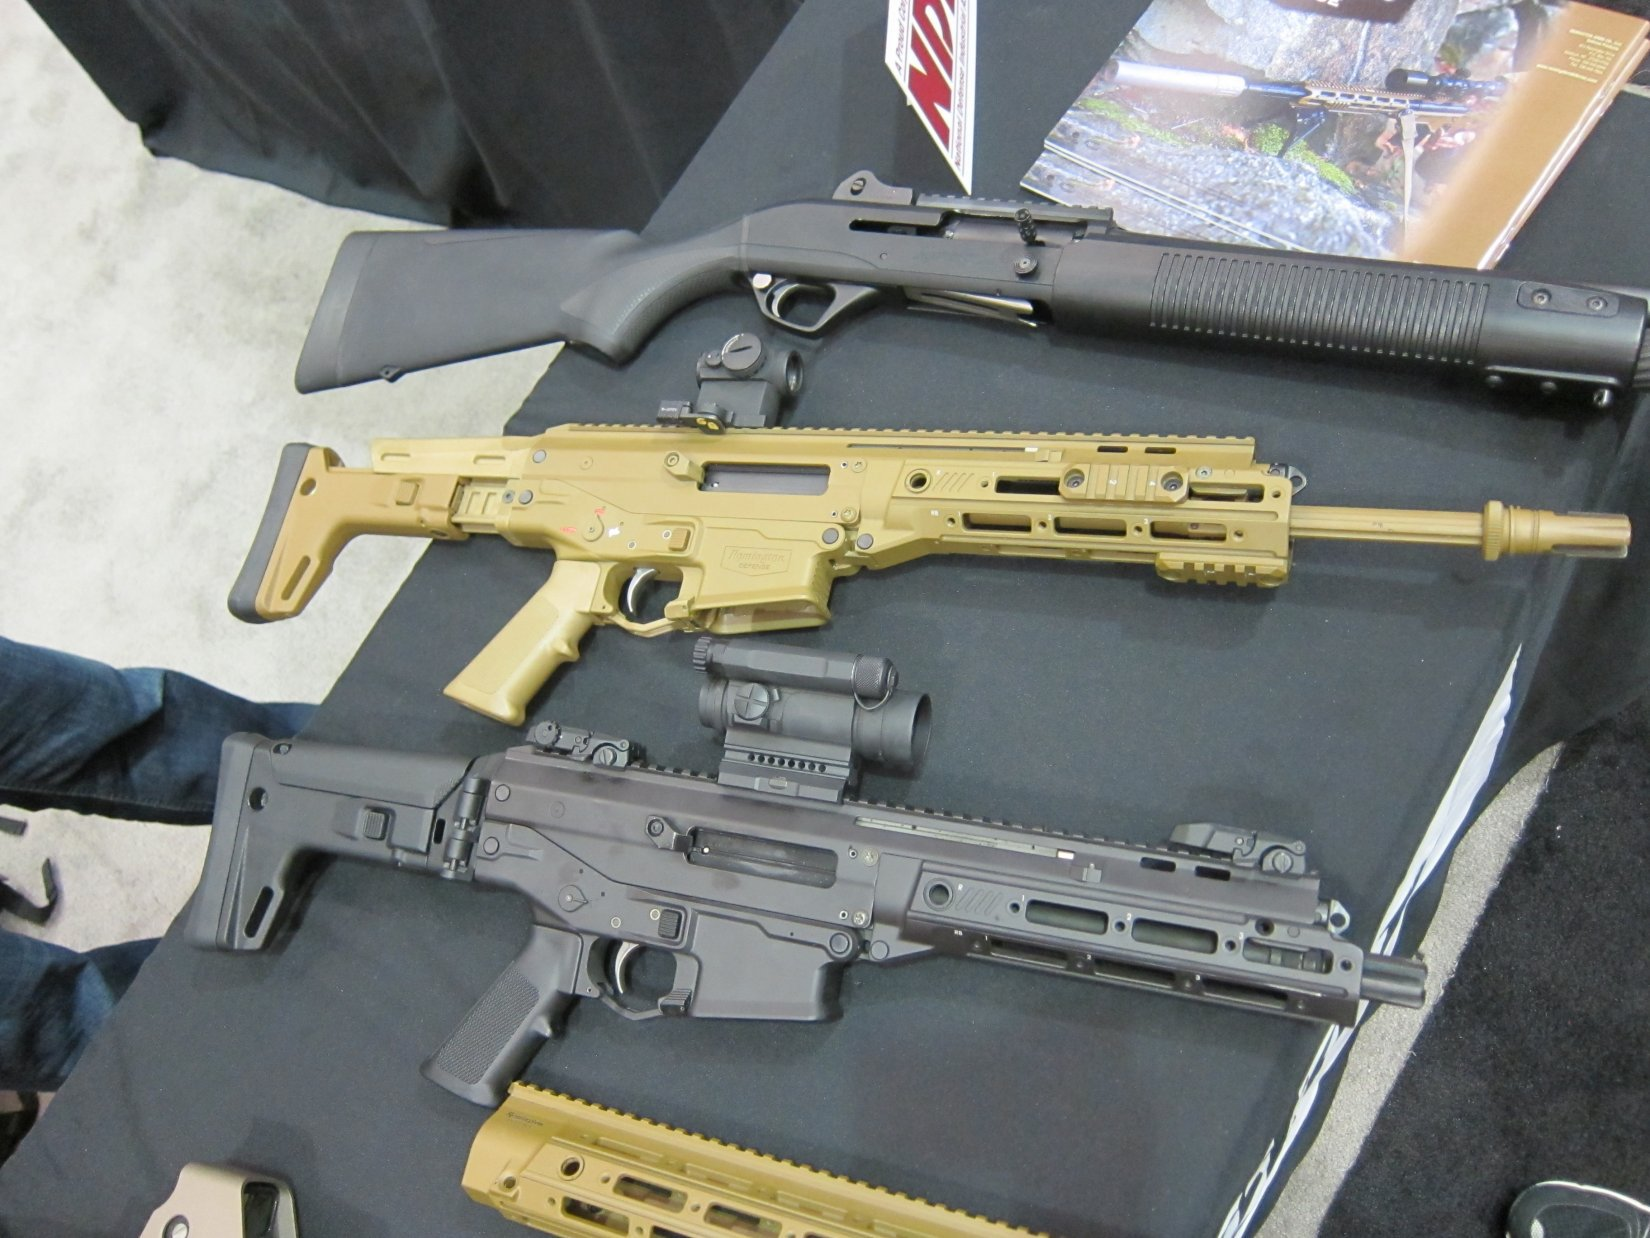 Remington ACR PDW SBR Adaptive Combat Rifle Personal Defense Weapon Short Barreled Rifle and Remington ACR Individual Carbine IC Robby Johnson NDIA Joint Armaments 2012 DefenseReview.com DR 1 Remington ACR PDW SBR (Adaptive Combat Rifle Personal Defense Weapon Short Barreled Rifle) and Remington Individual Carbine (IC) Candidate: Remington Defense Assault Rifles/Carbines/PDWs at NDIA Joint Armaments Conference 2012 (Video!)